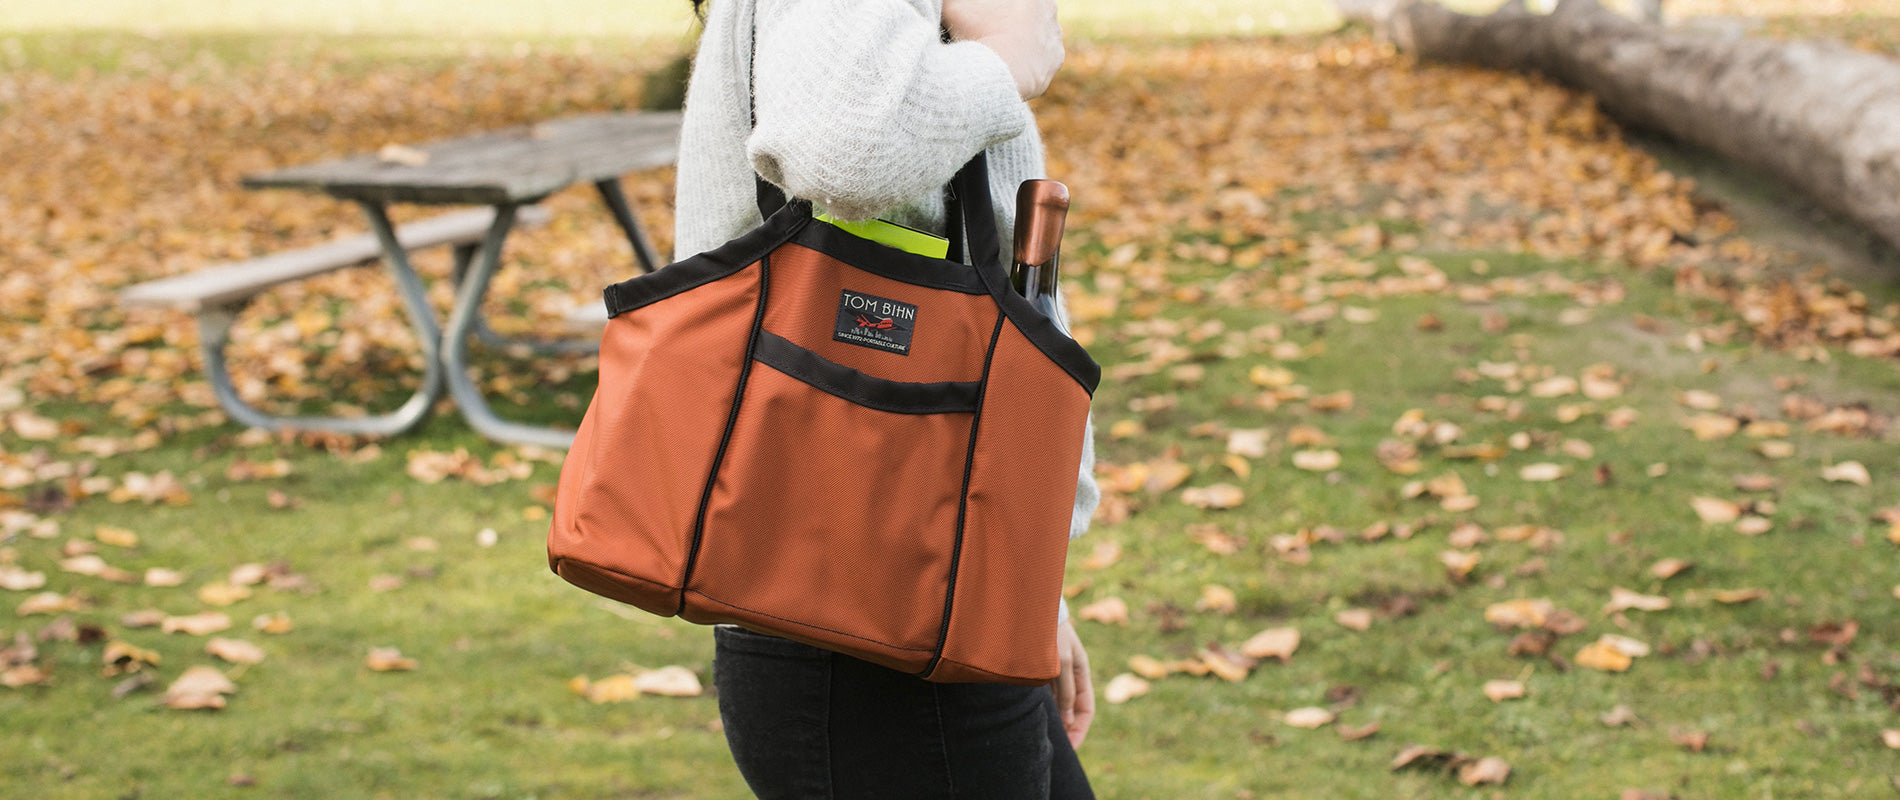 Woman carrying the Pick-Up Truck as a picnic tote on a beautiful fall day.